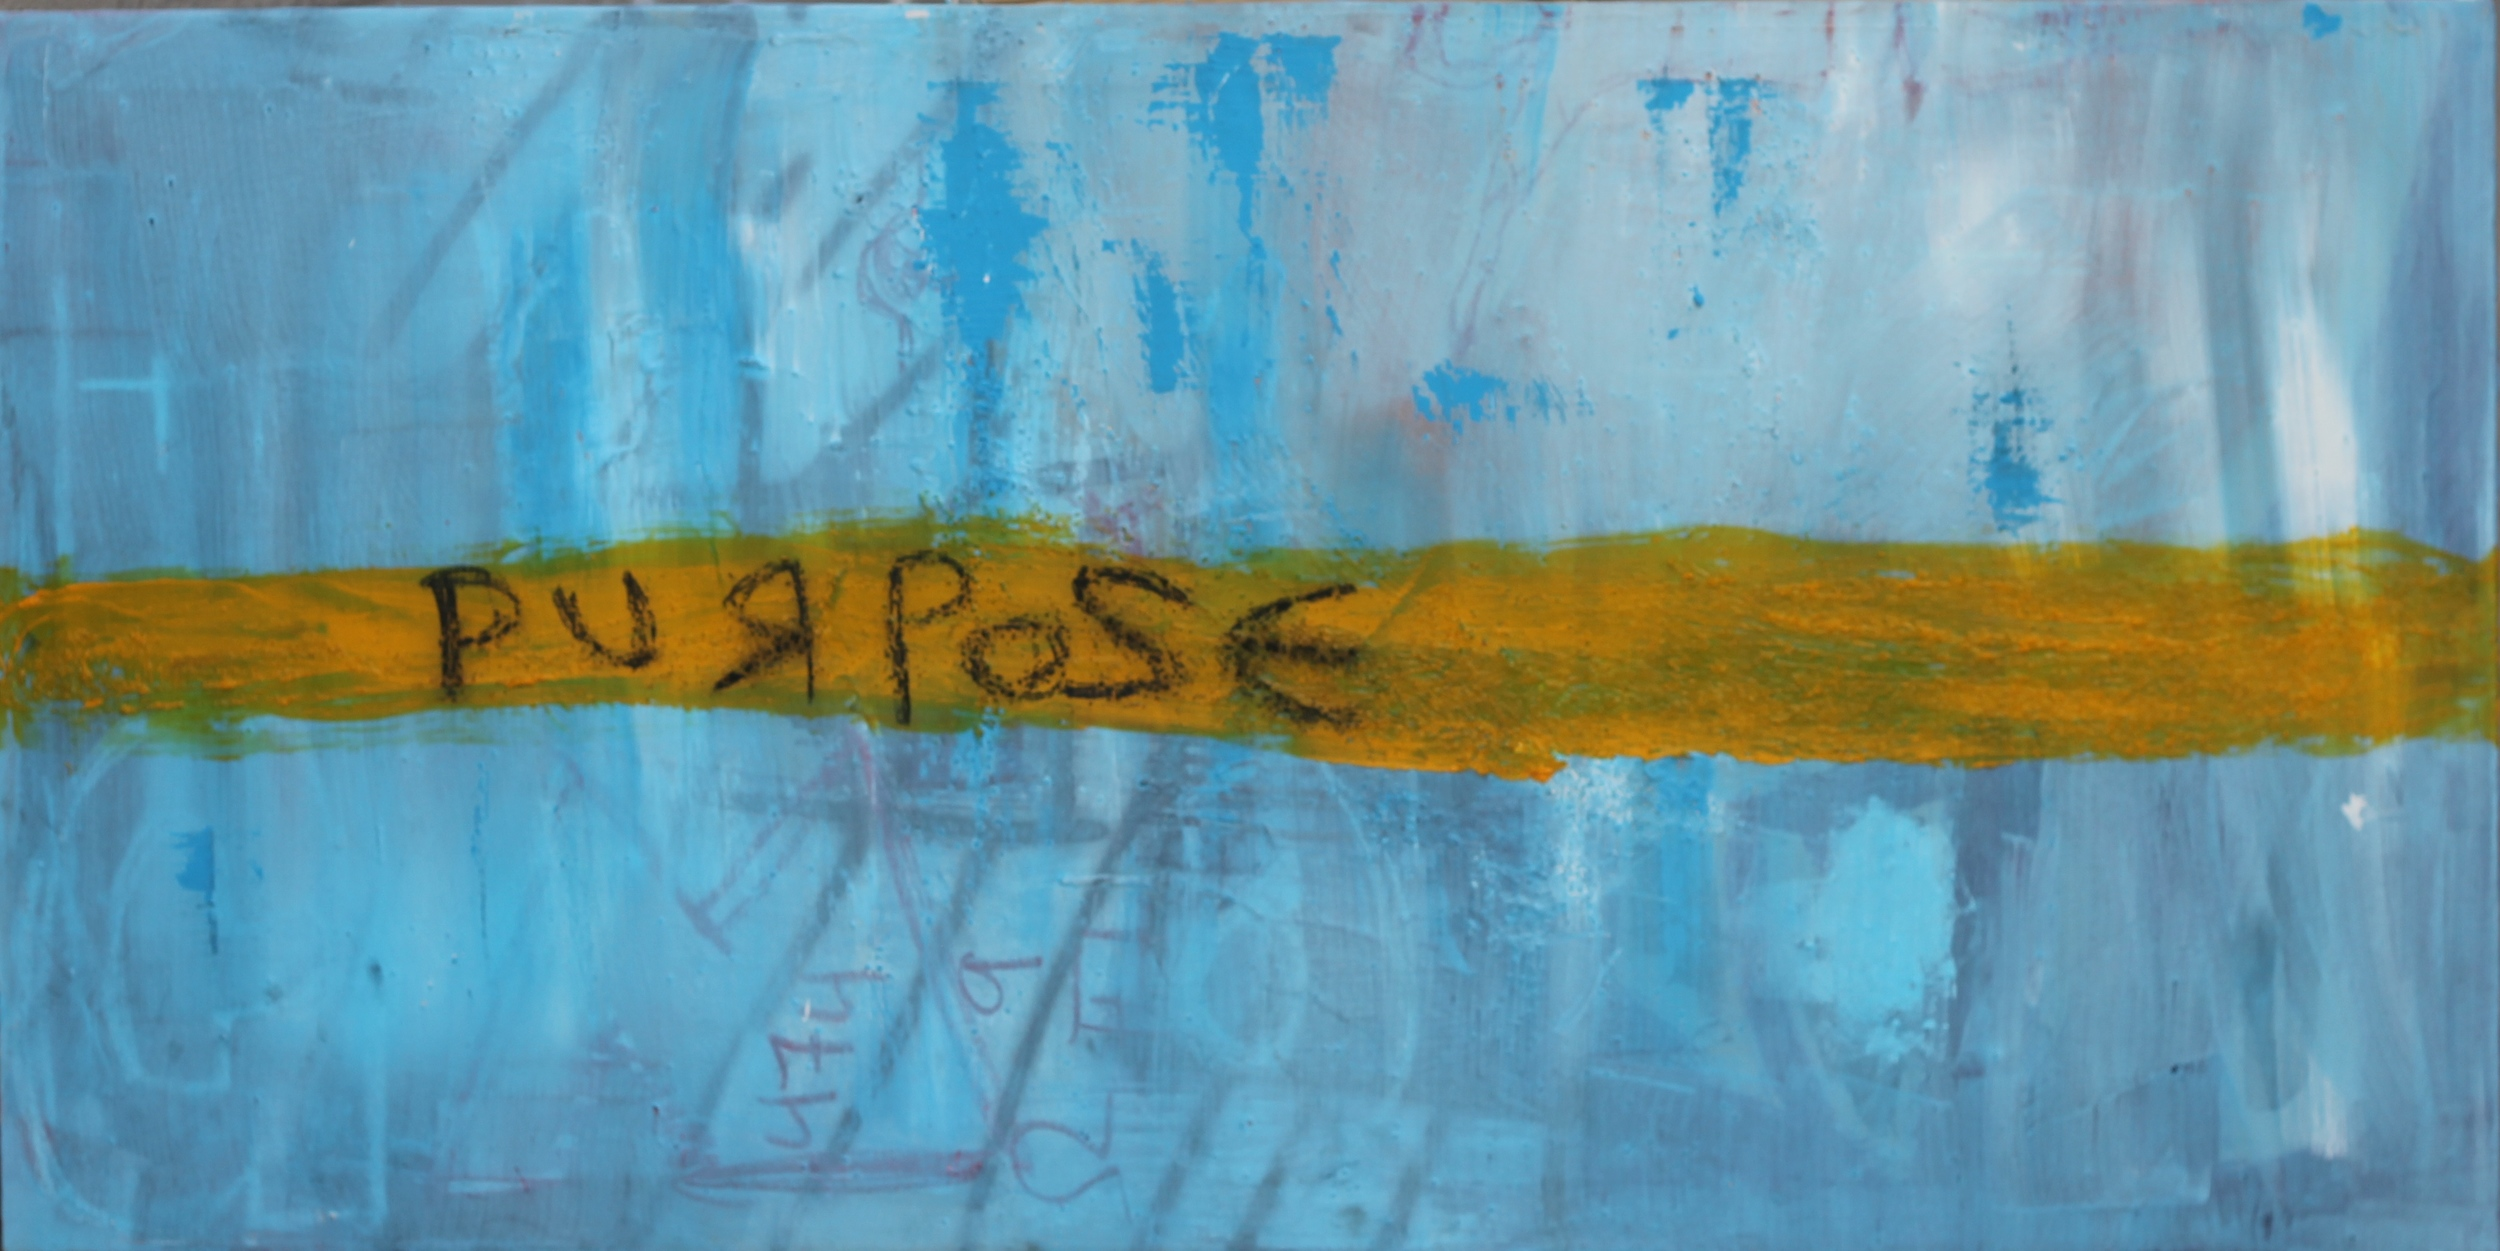 Purpose , 2015 Jeffrey Alonzo Karahamuheto 48 in  x 24 in Oil, Acrylic, Pastels, Spray Paint, and Granular Gel on stretched Canvas  (Sold- Private Owner)